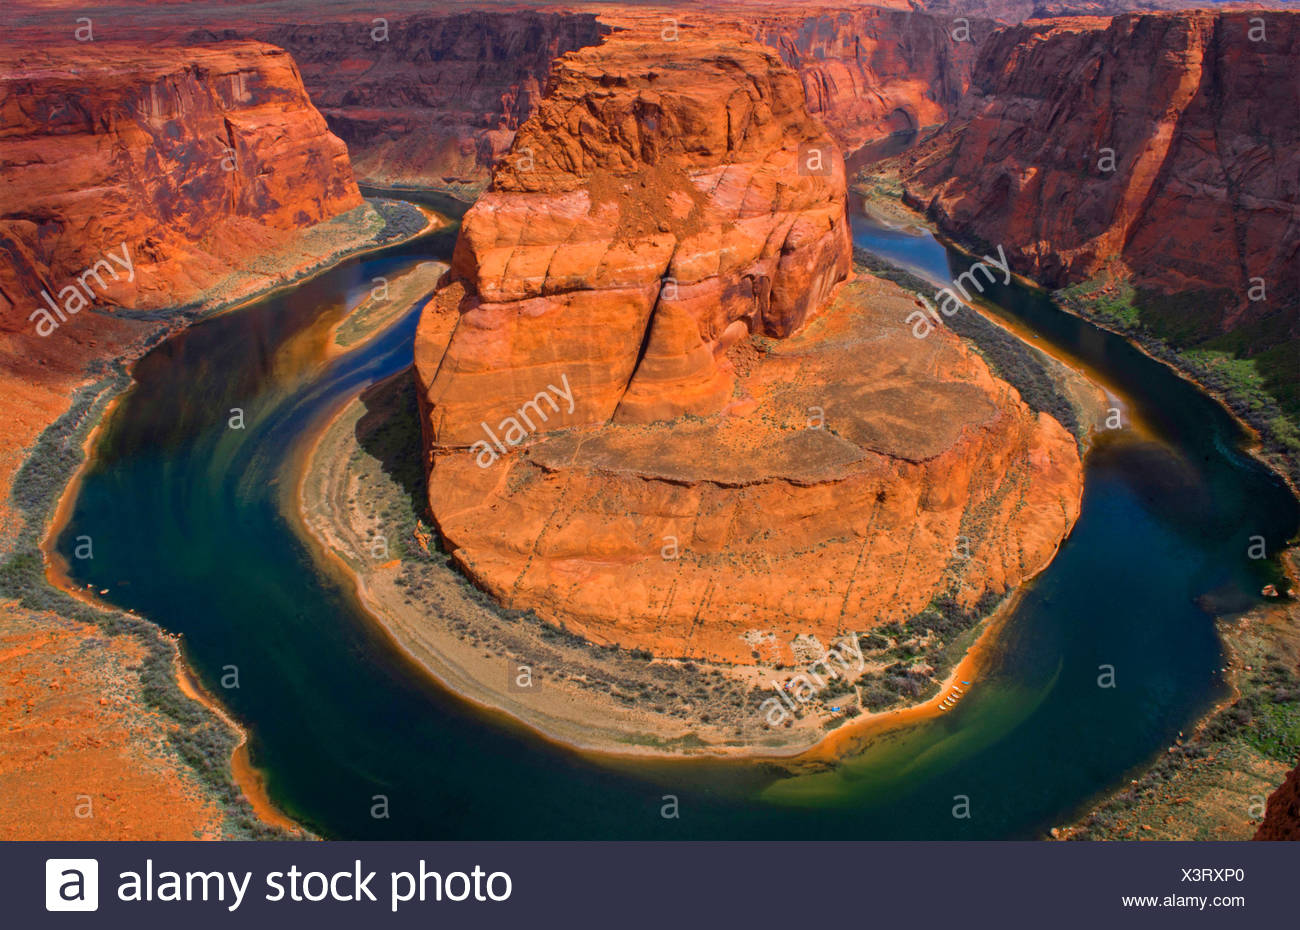 Curva a ferro di cavallo al Glen Canyon National Recreation Area dal di sopra, USA, Arizona, pagina Immagini Stock